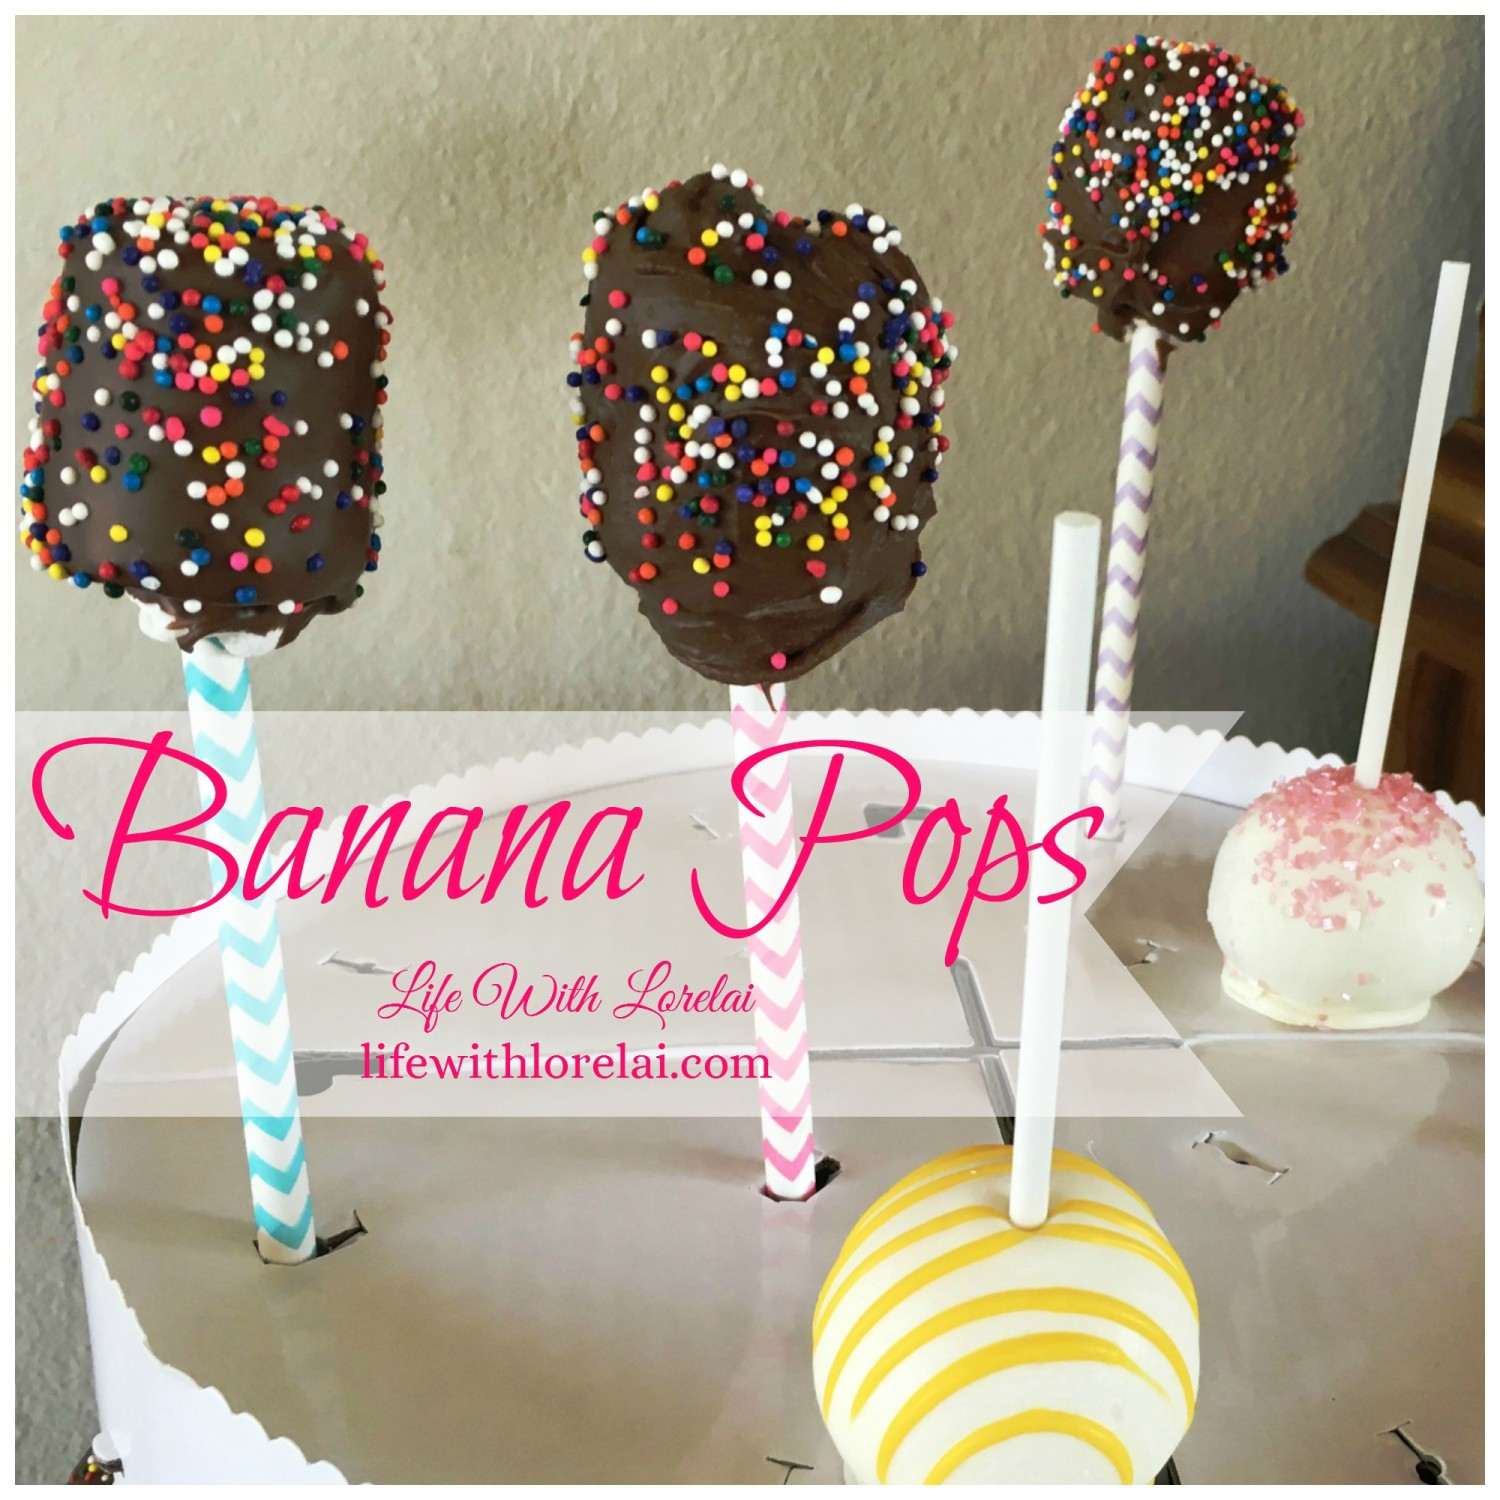 Banana Pops - Life With Lorelai